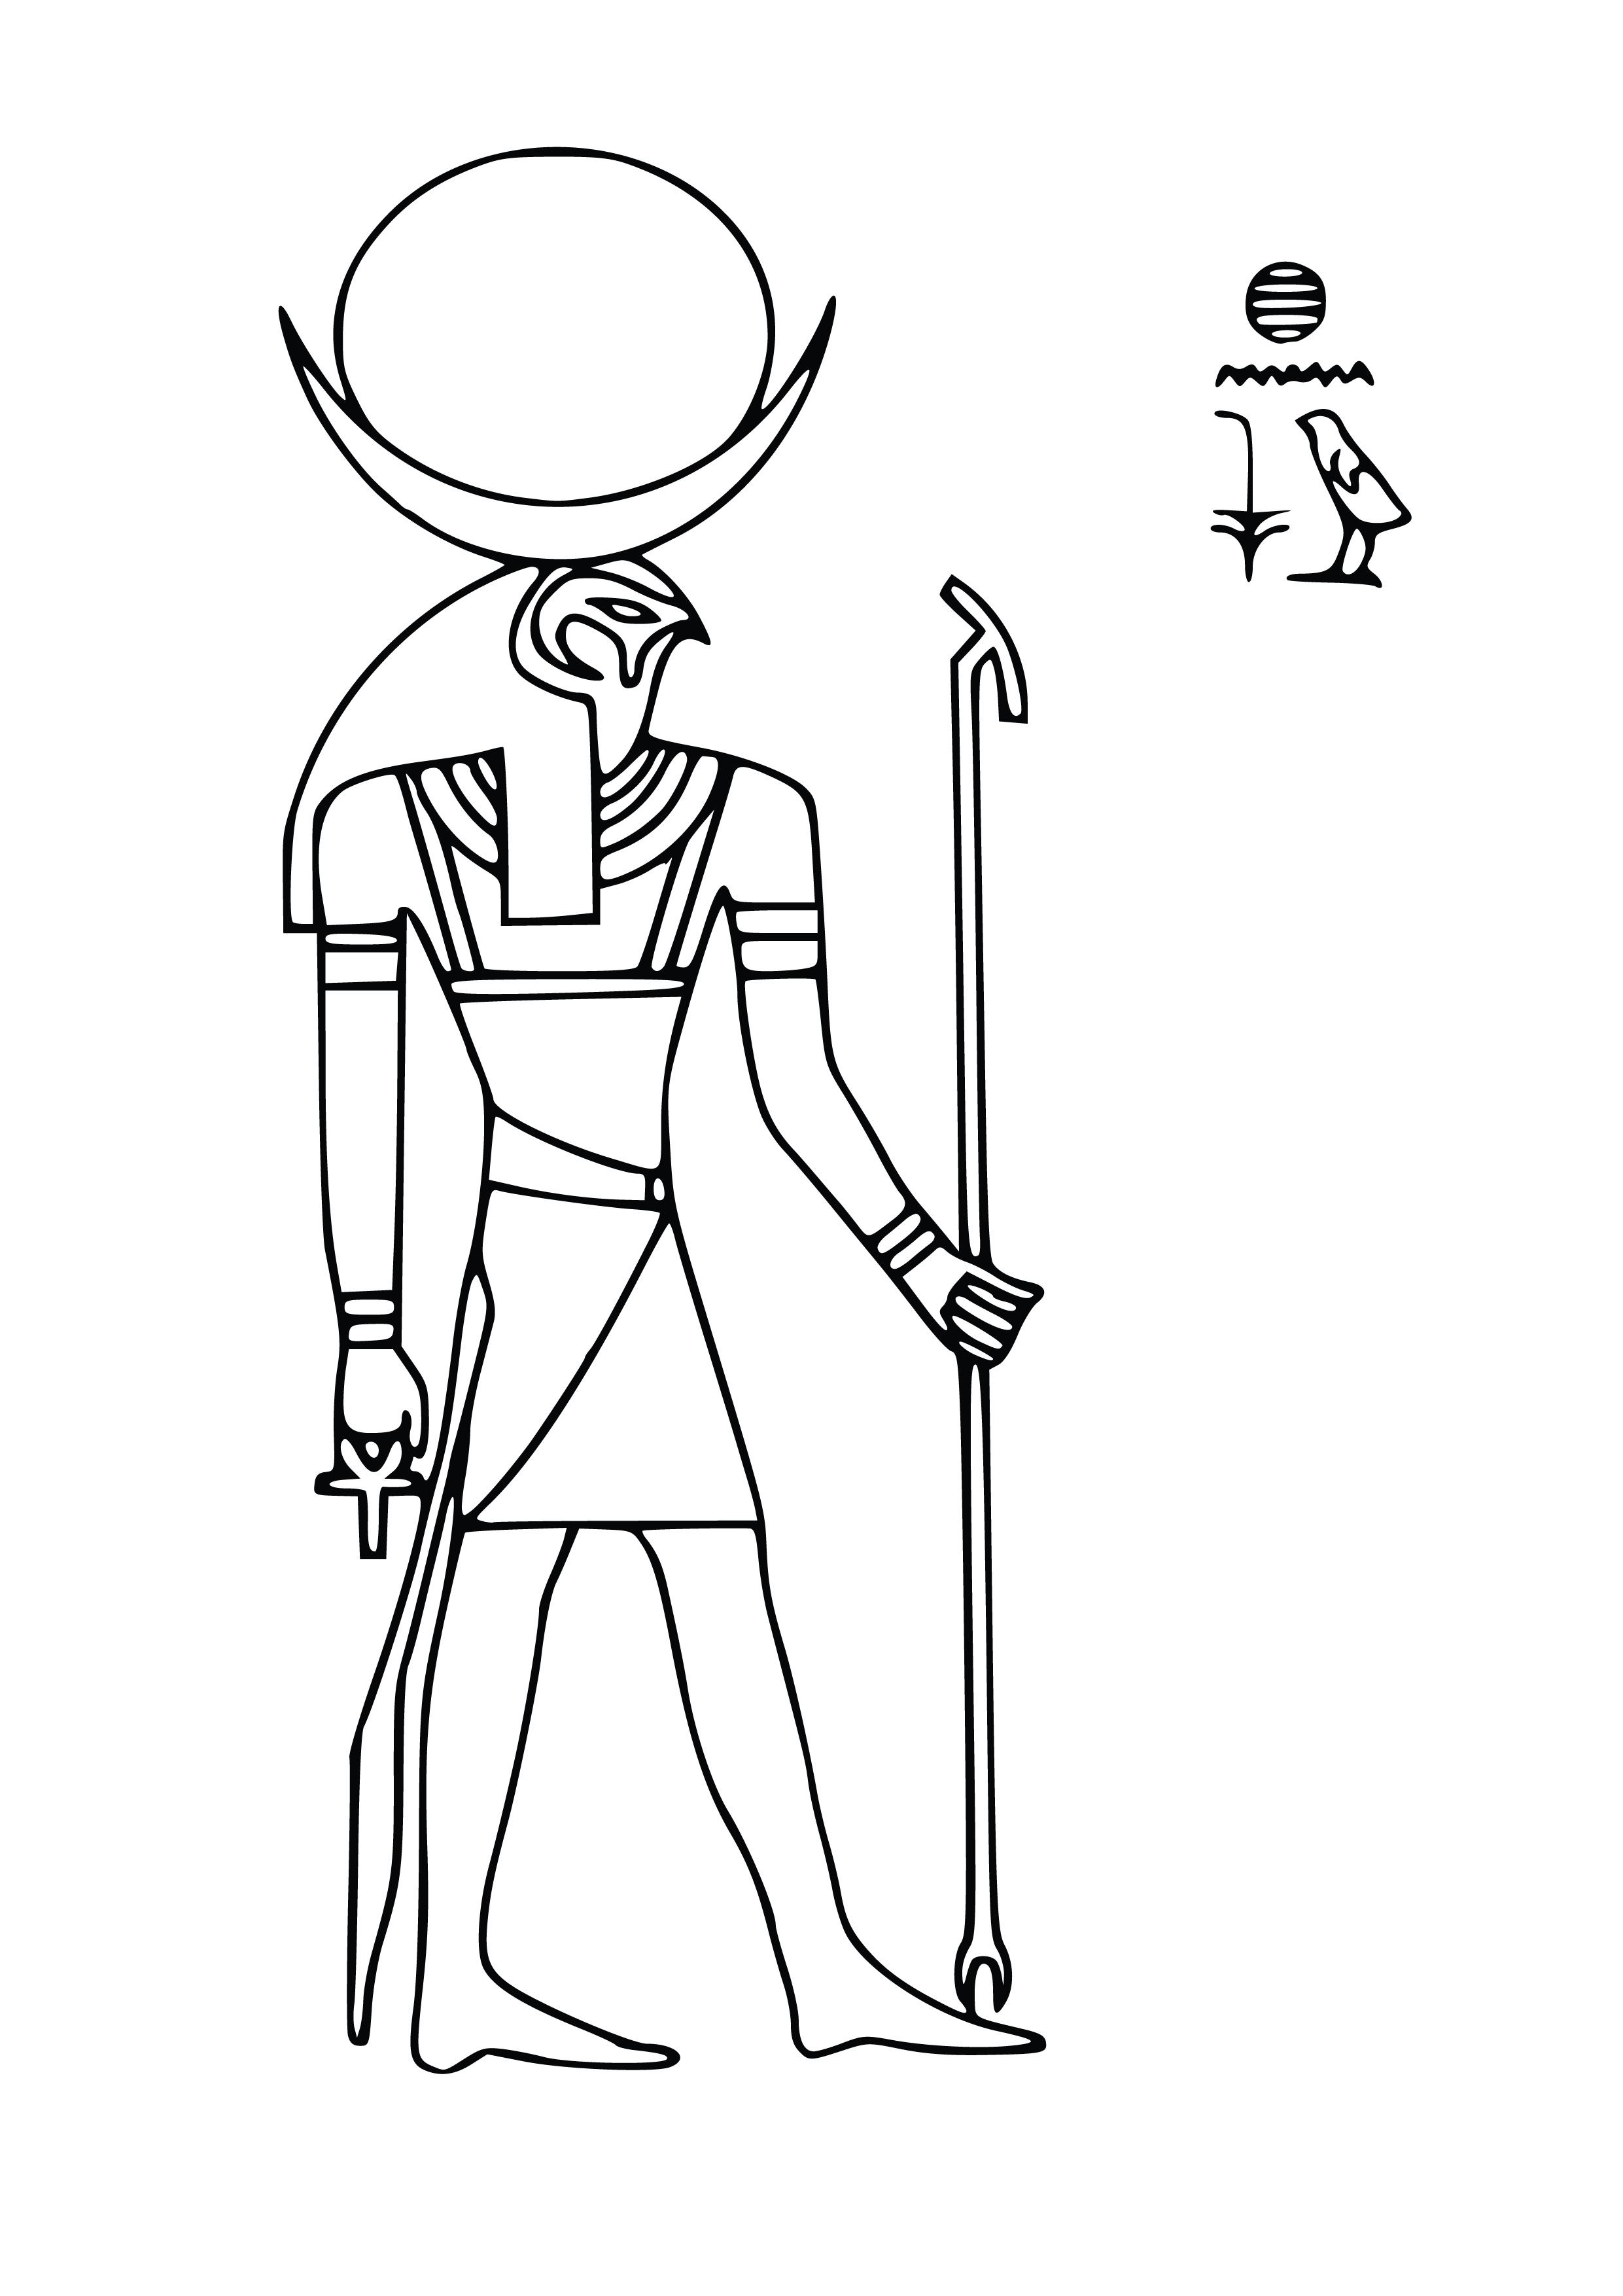 EQYPTIAN GOD Free Clipart Coloring Pages for Kids Adults Art Activities Line Art